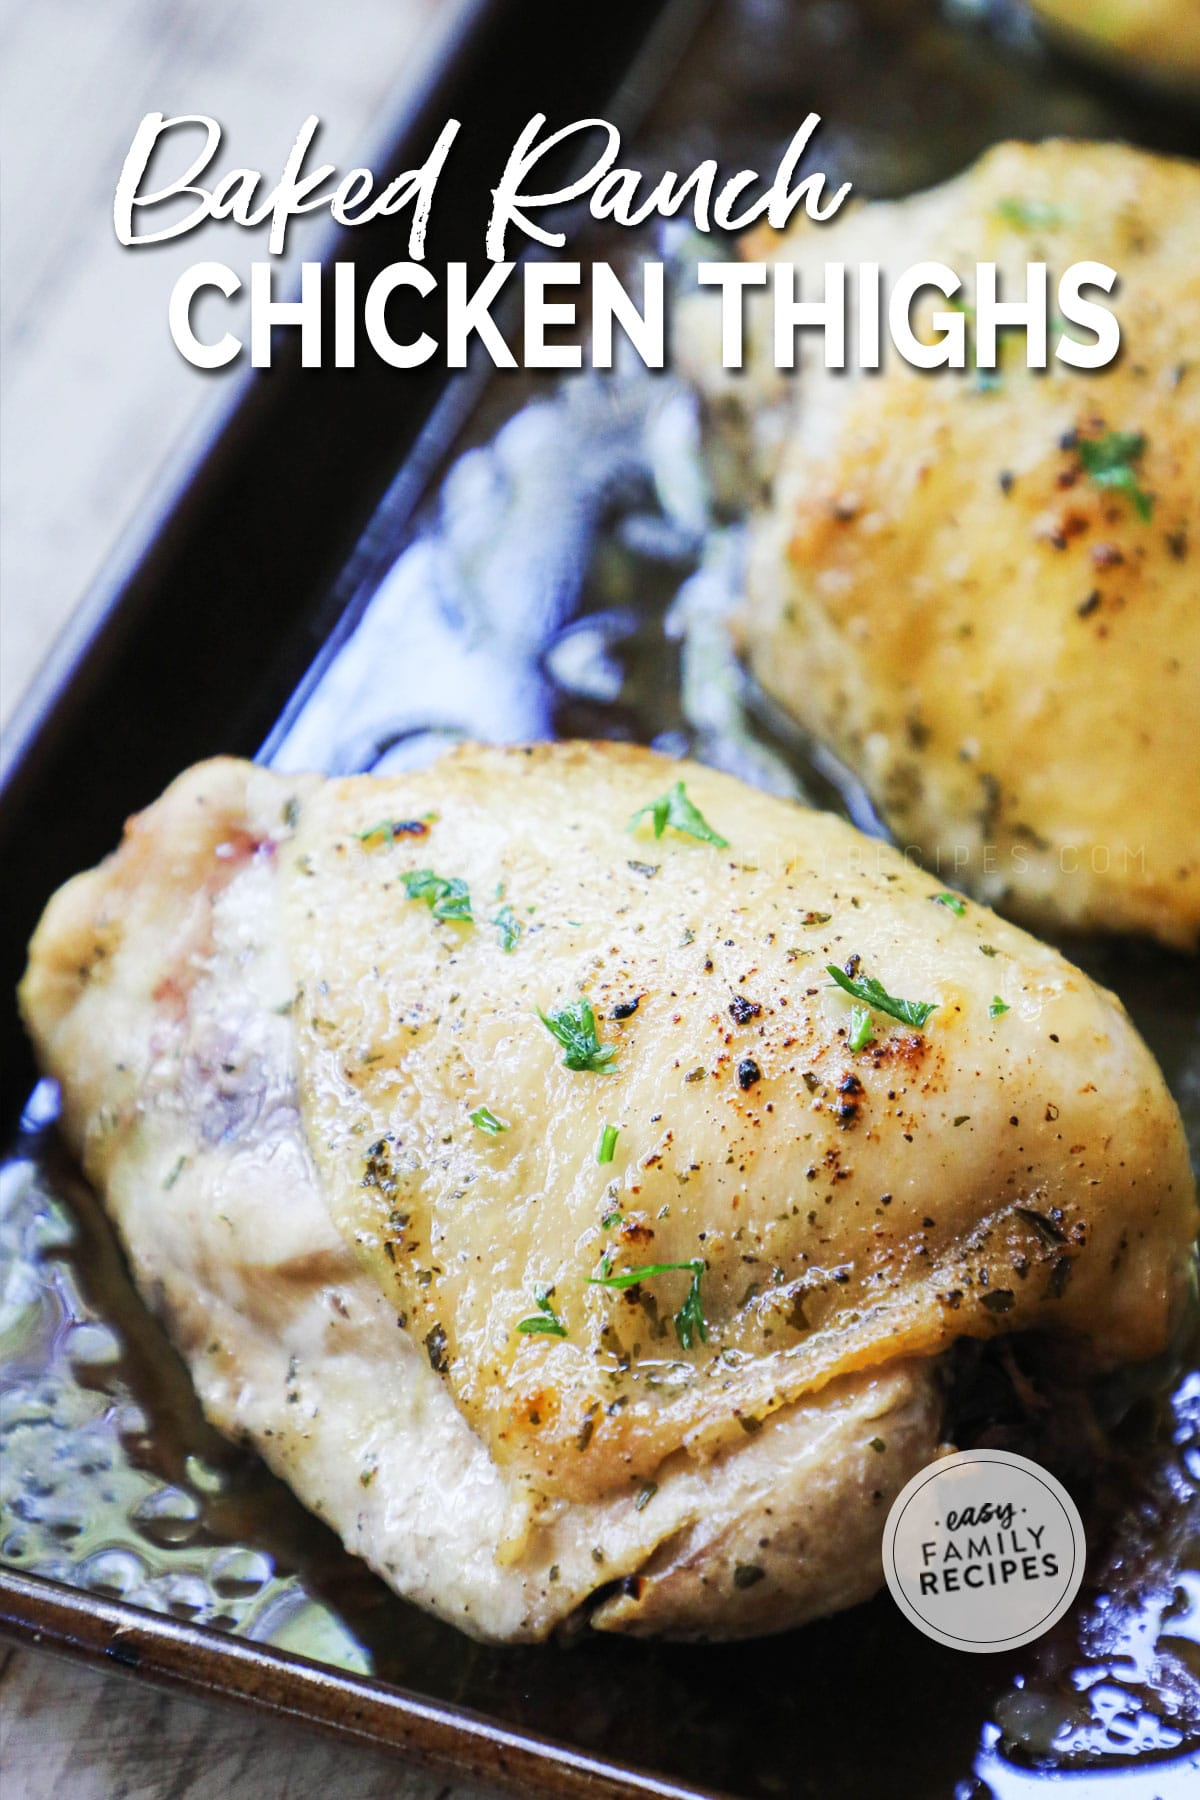 Roasted chicken thighs with hidden valley ranch mix